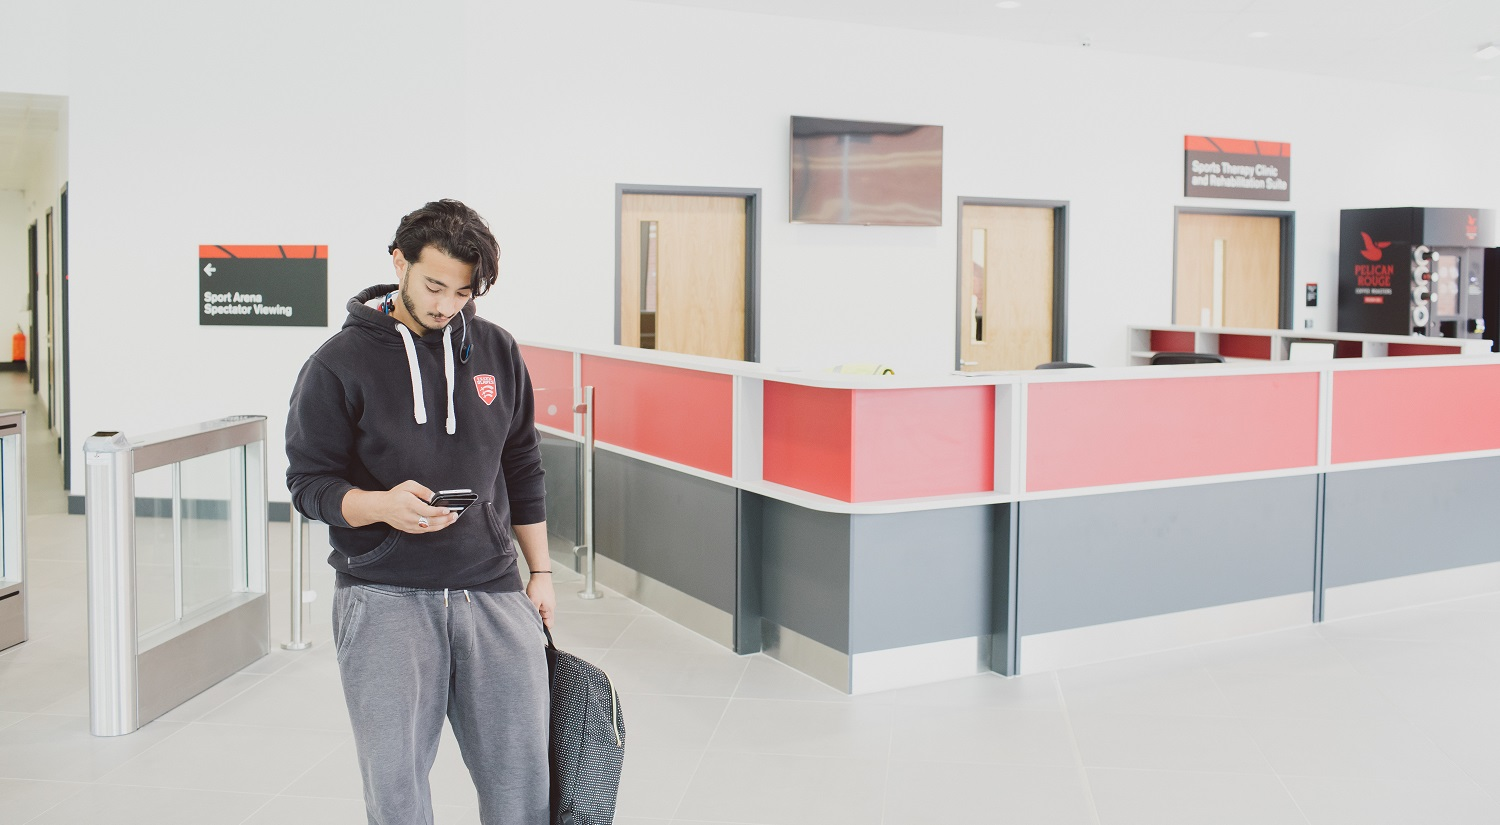 A student looking down at their phone in their right hand as they walk through the lobby of the Essex Sport Arena.